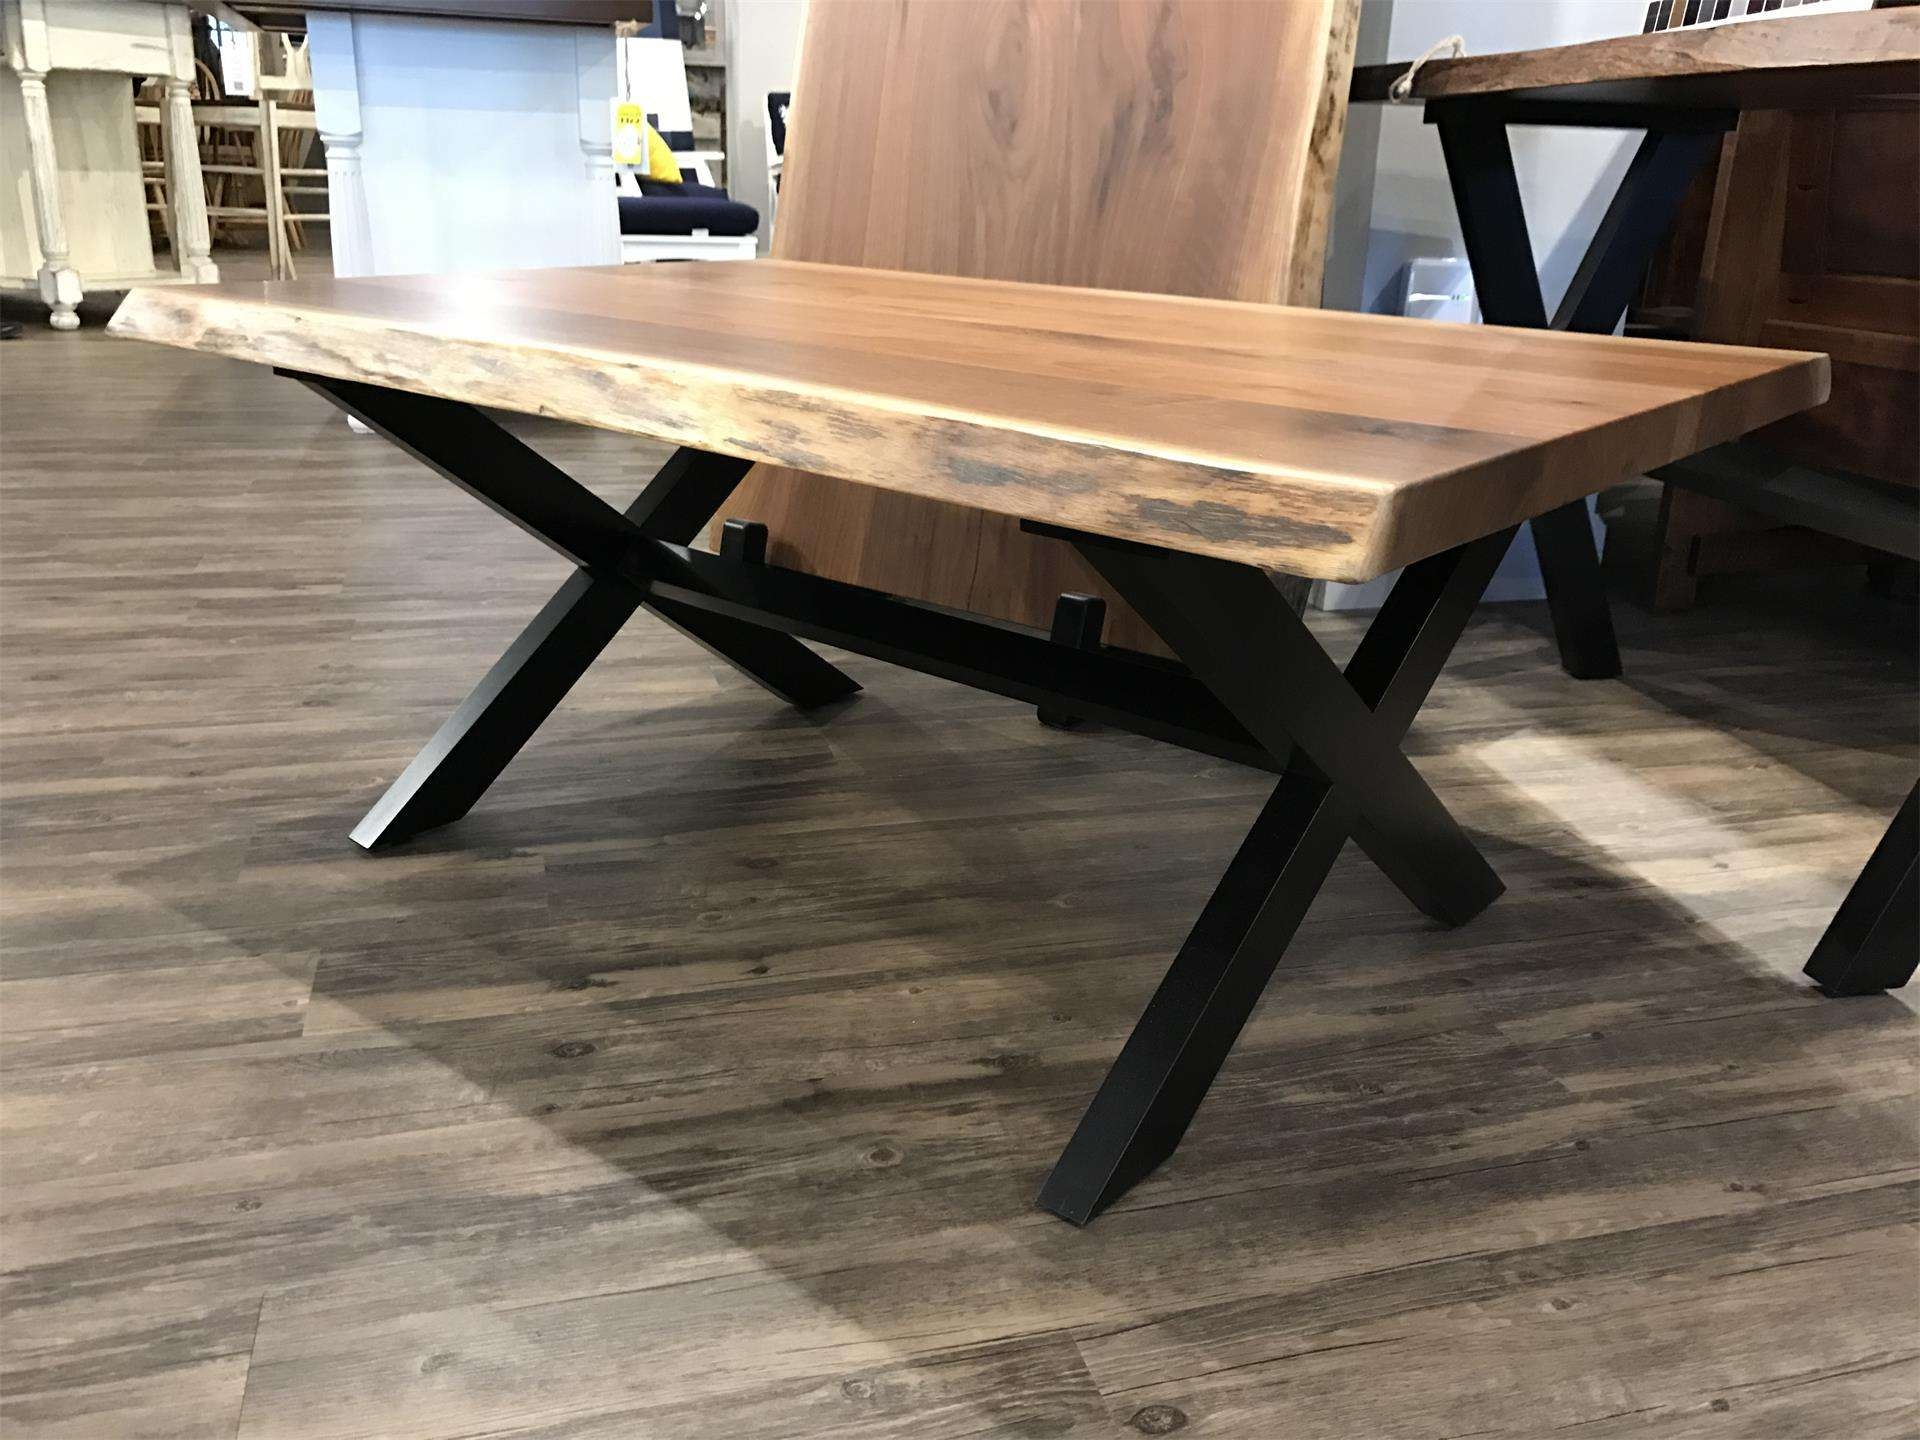 In Stock Live Edge Coffee Table From Dutchcrafters Amish Furniture Intended For Favorite Live Edge Coffee Tables (Gallery 1 of 20)